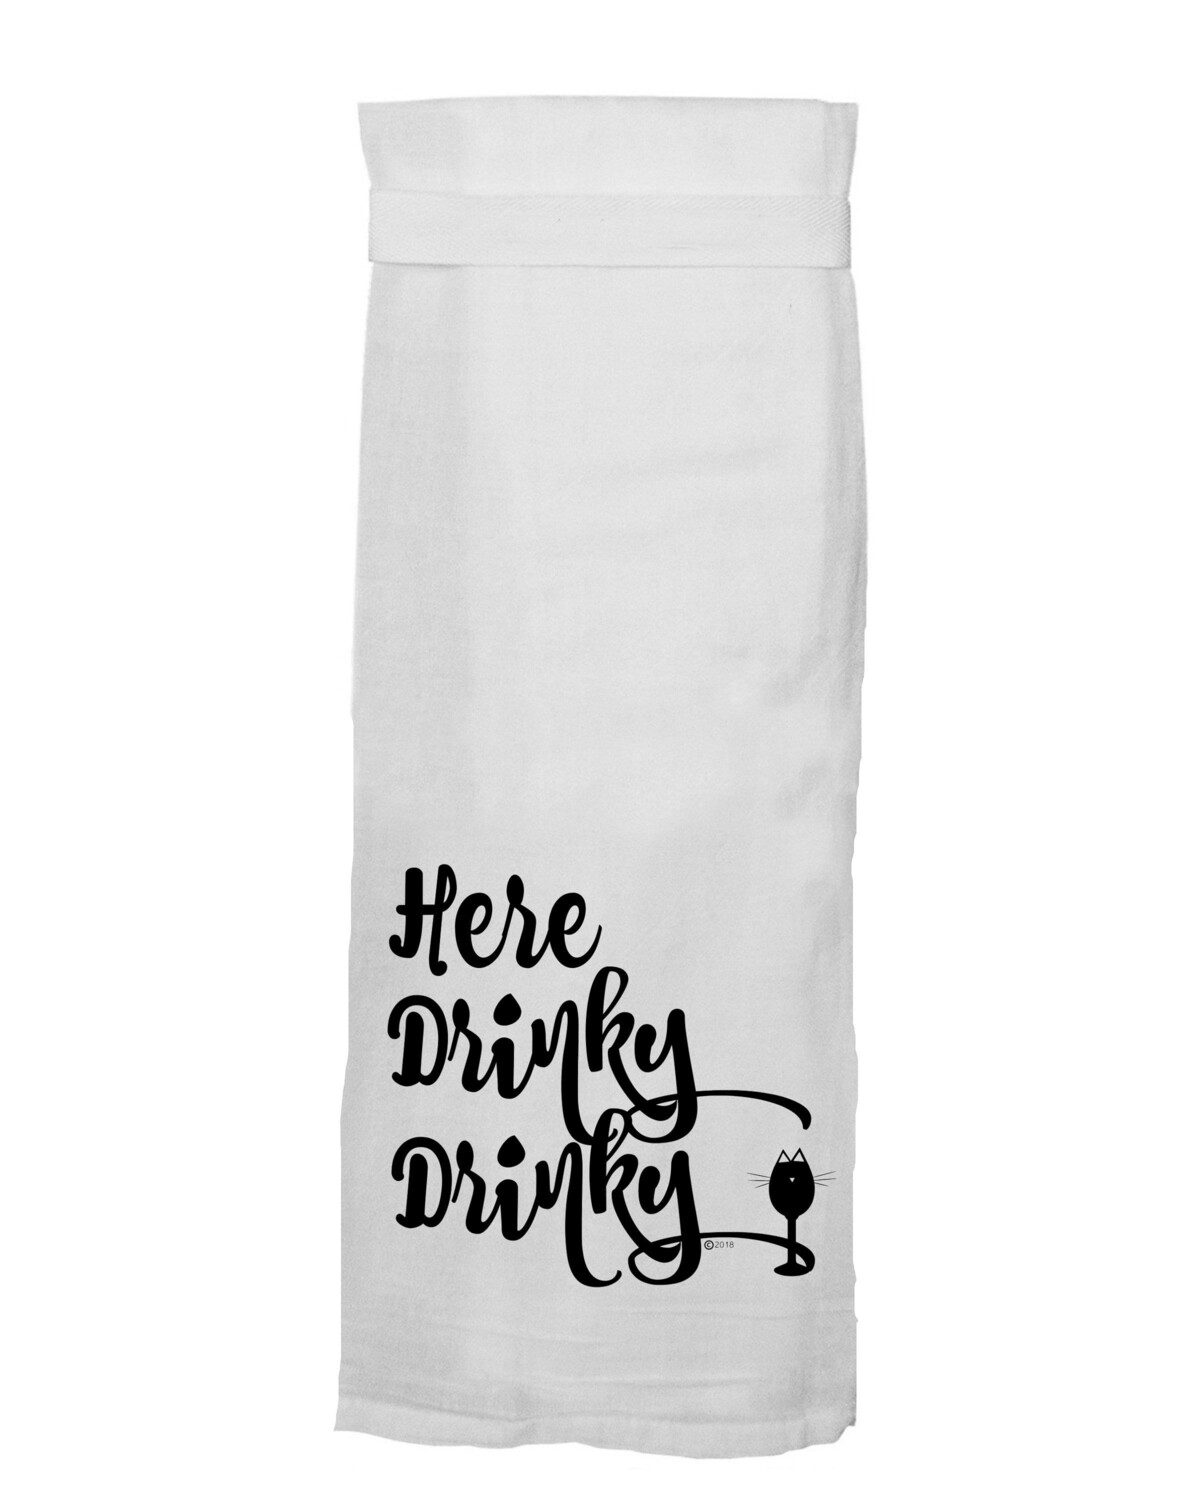 Here Drinky Drinky Towel By Twisted Wares